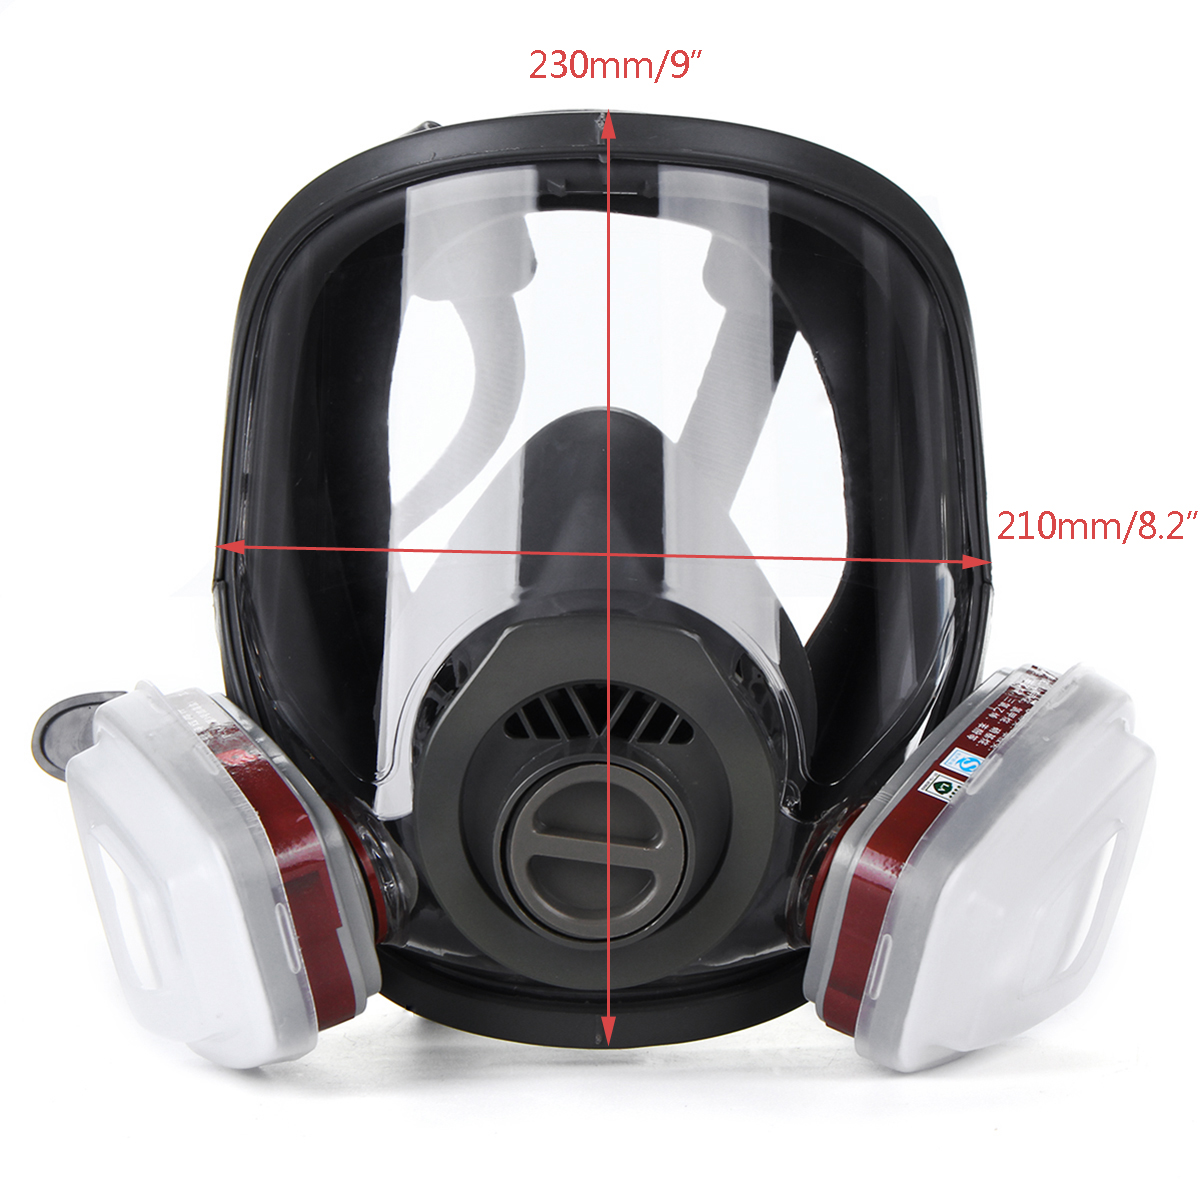 15 in 1 Full Face Gas Mask Facepiece Respirator Painting Spraying Mask 6800 Dust 22